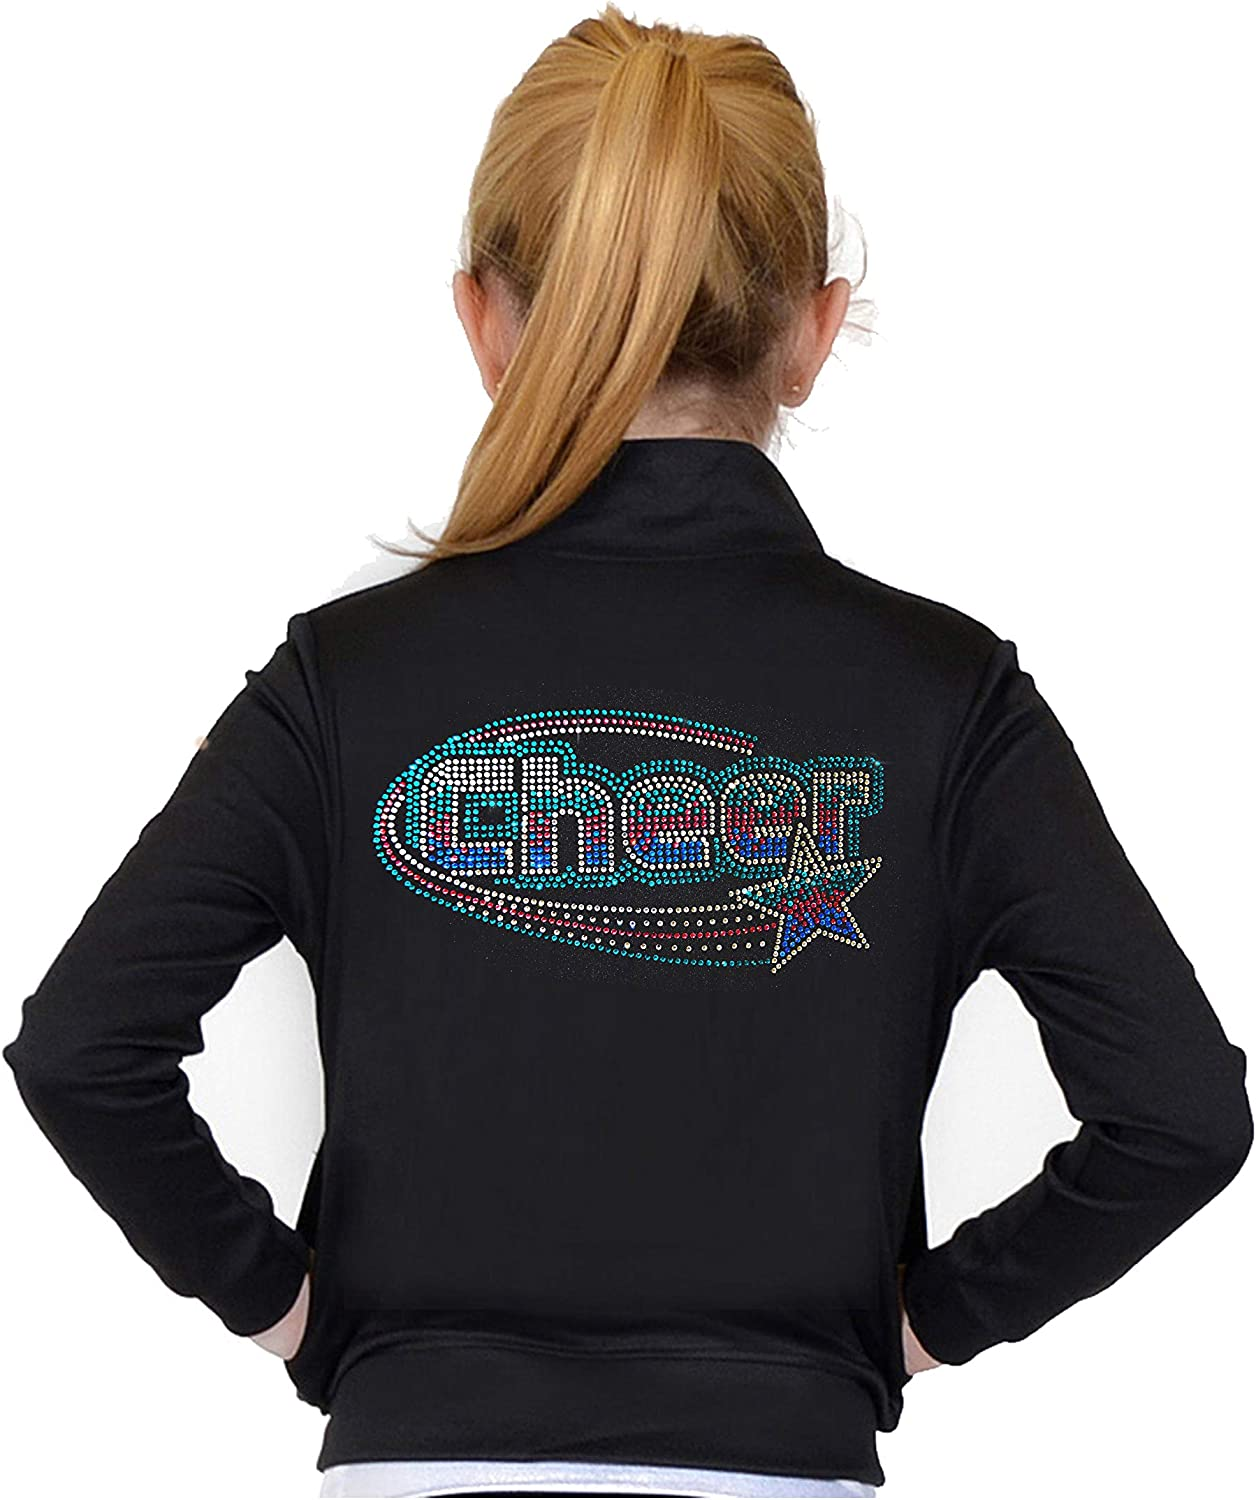 Stretch is Comfort Girl's and Women's Live Love Cheer Warm Up Black Jacket